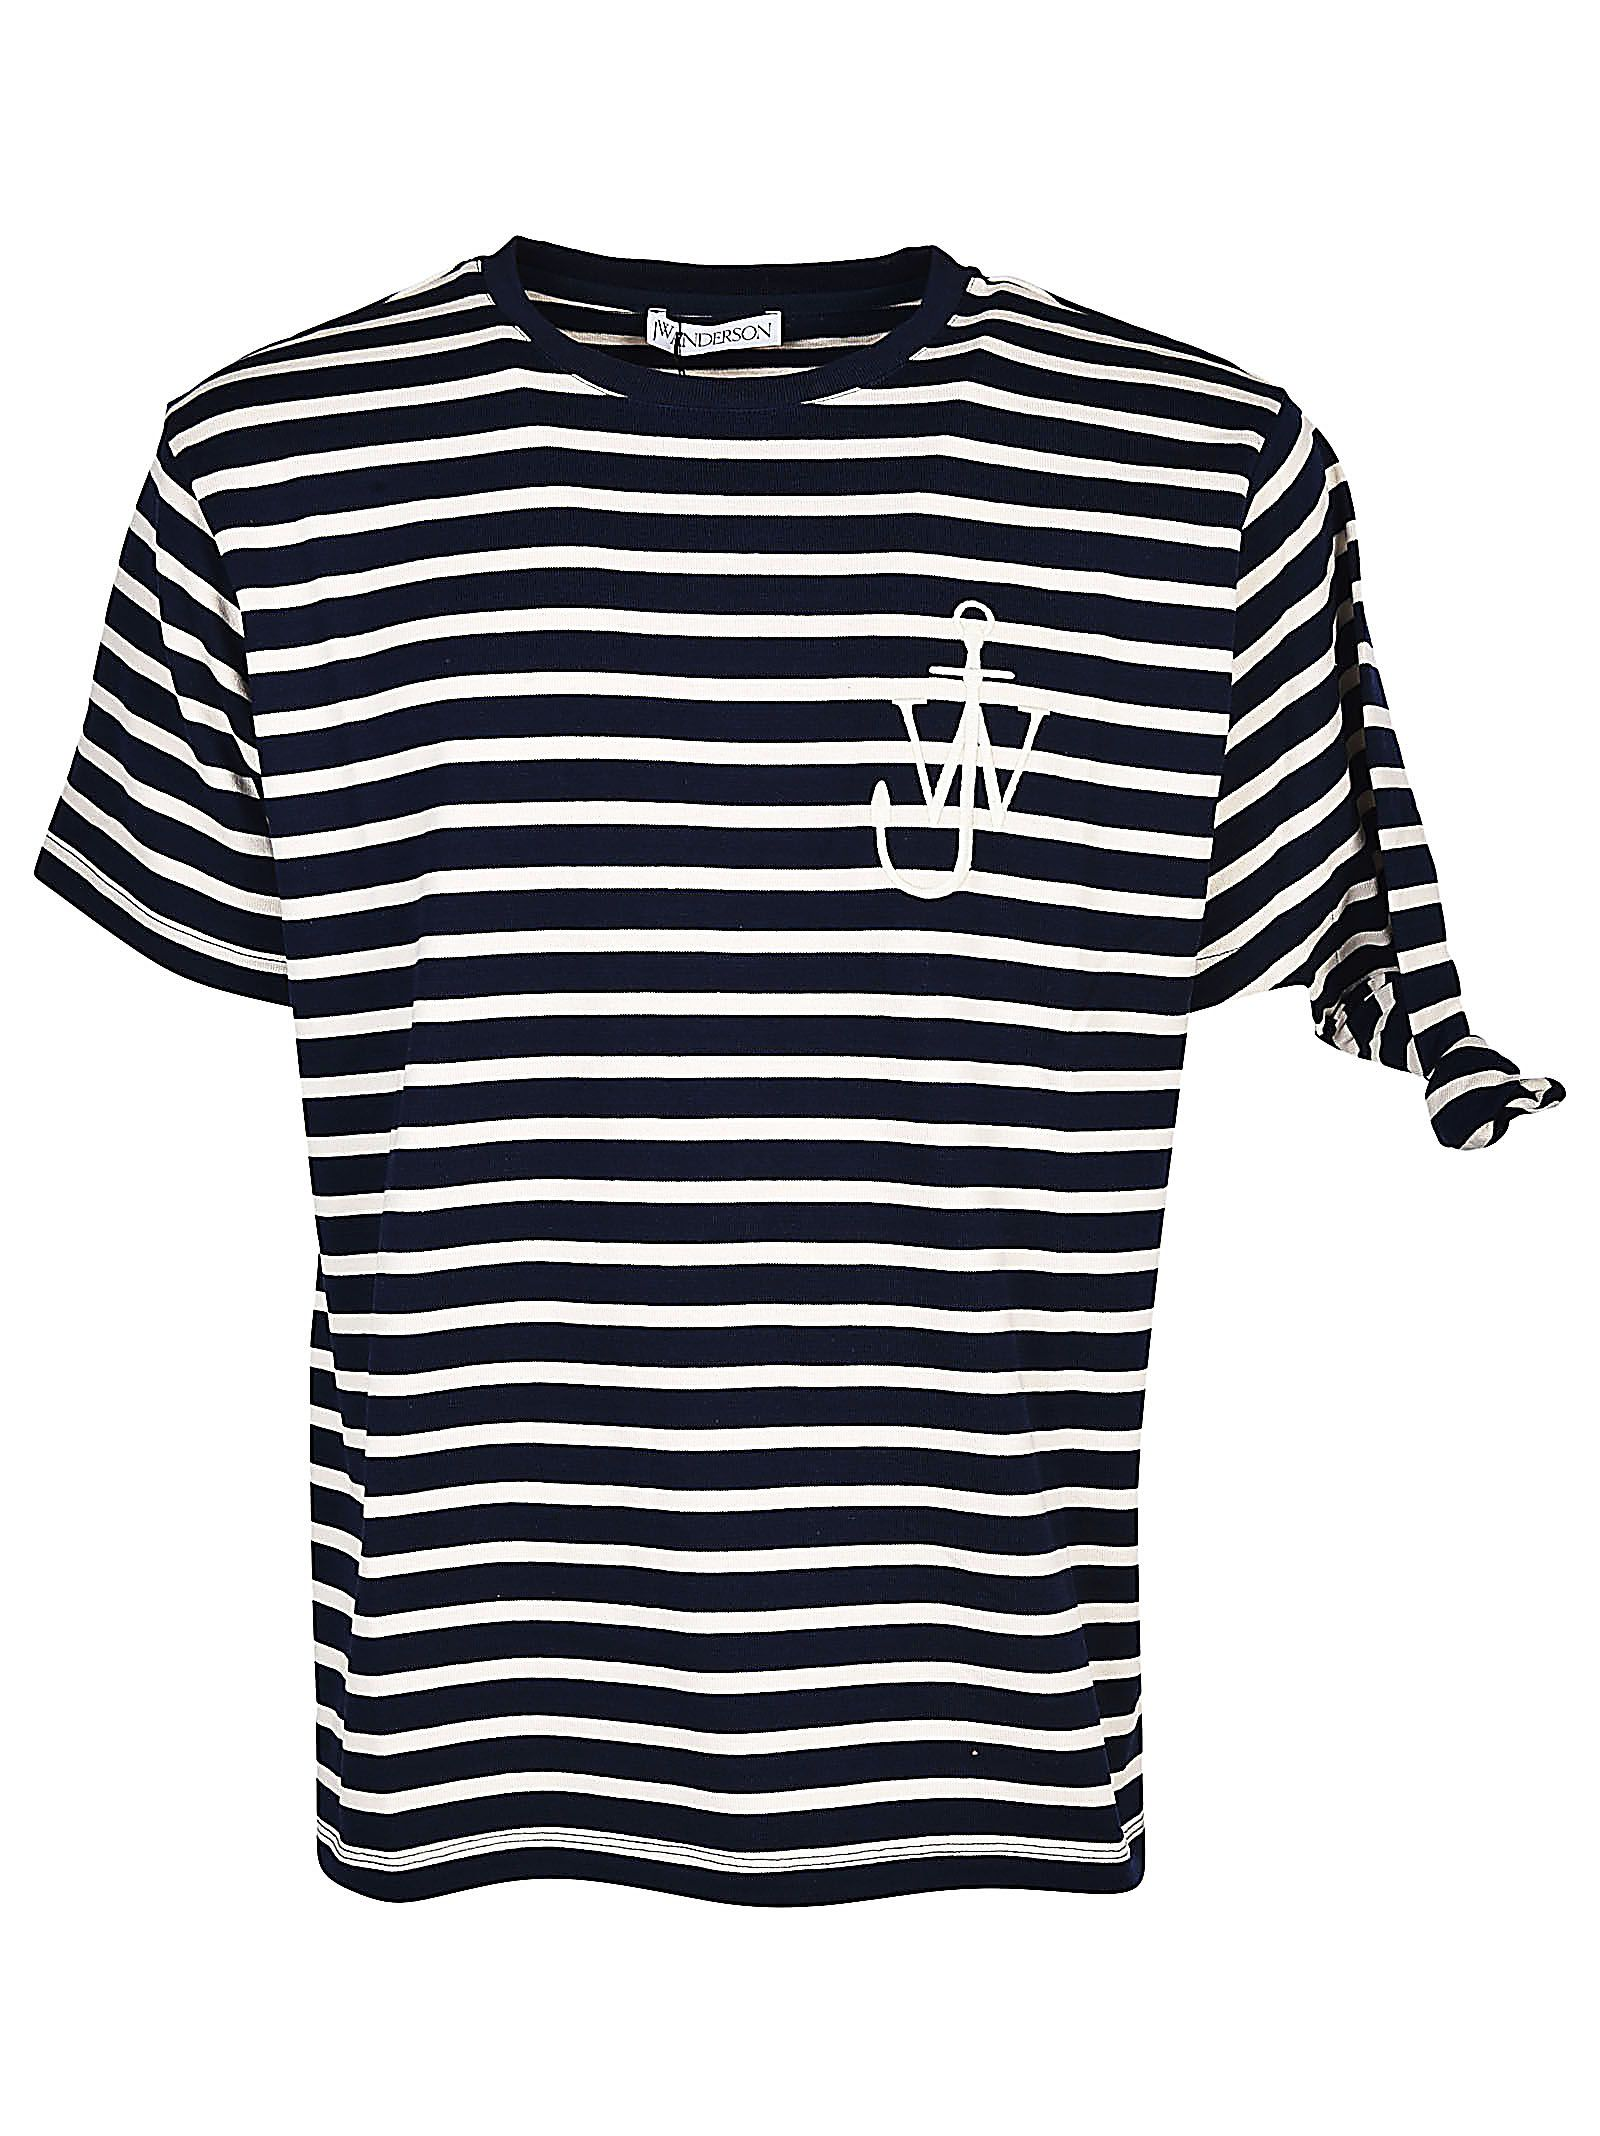 J.w Anderson Striped Detailing T-shirt